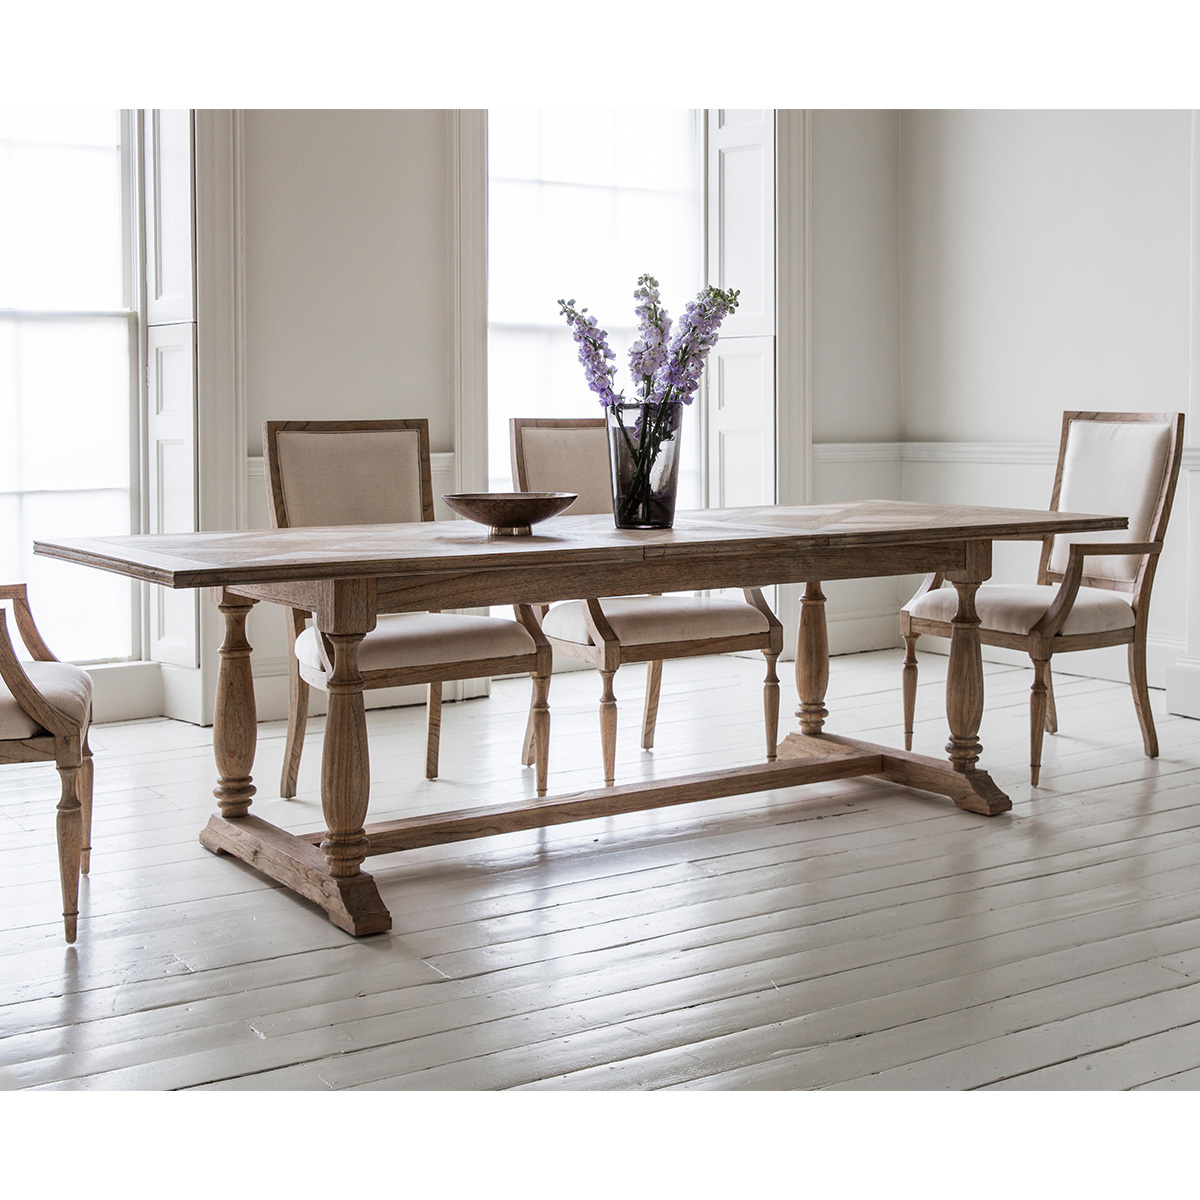 French Colonial Rectangular Extending Dining Table with Chairs (Number of Chairs: 6 Standard Chairs & 2 Carver Chairs)